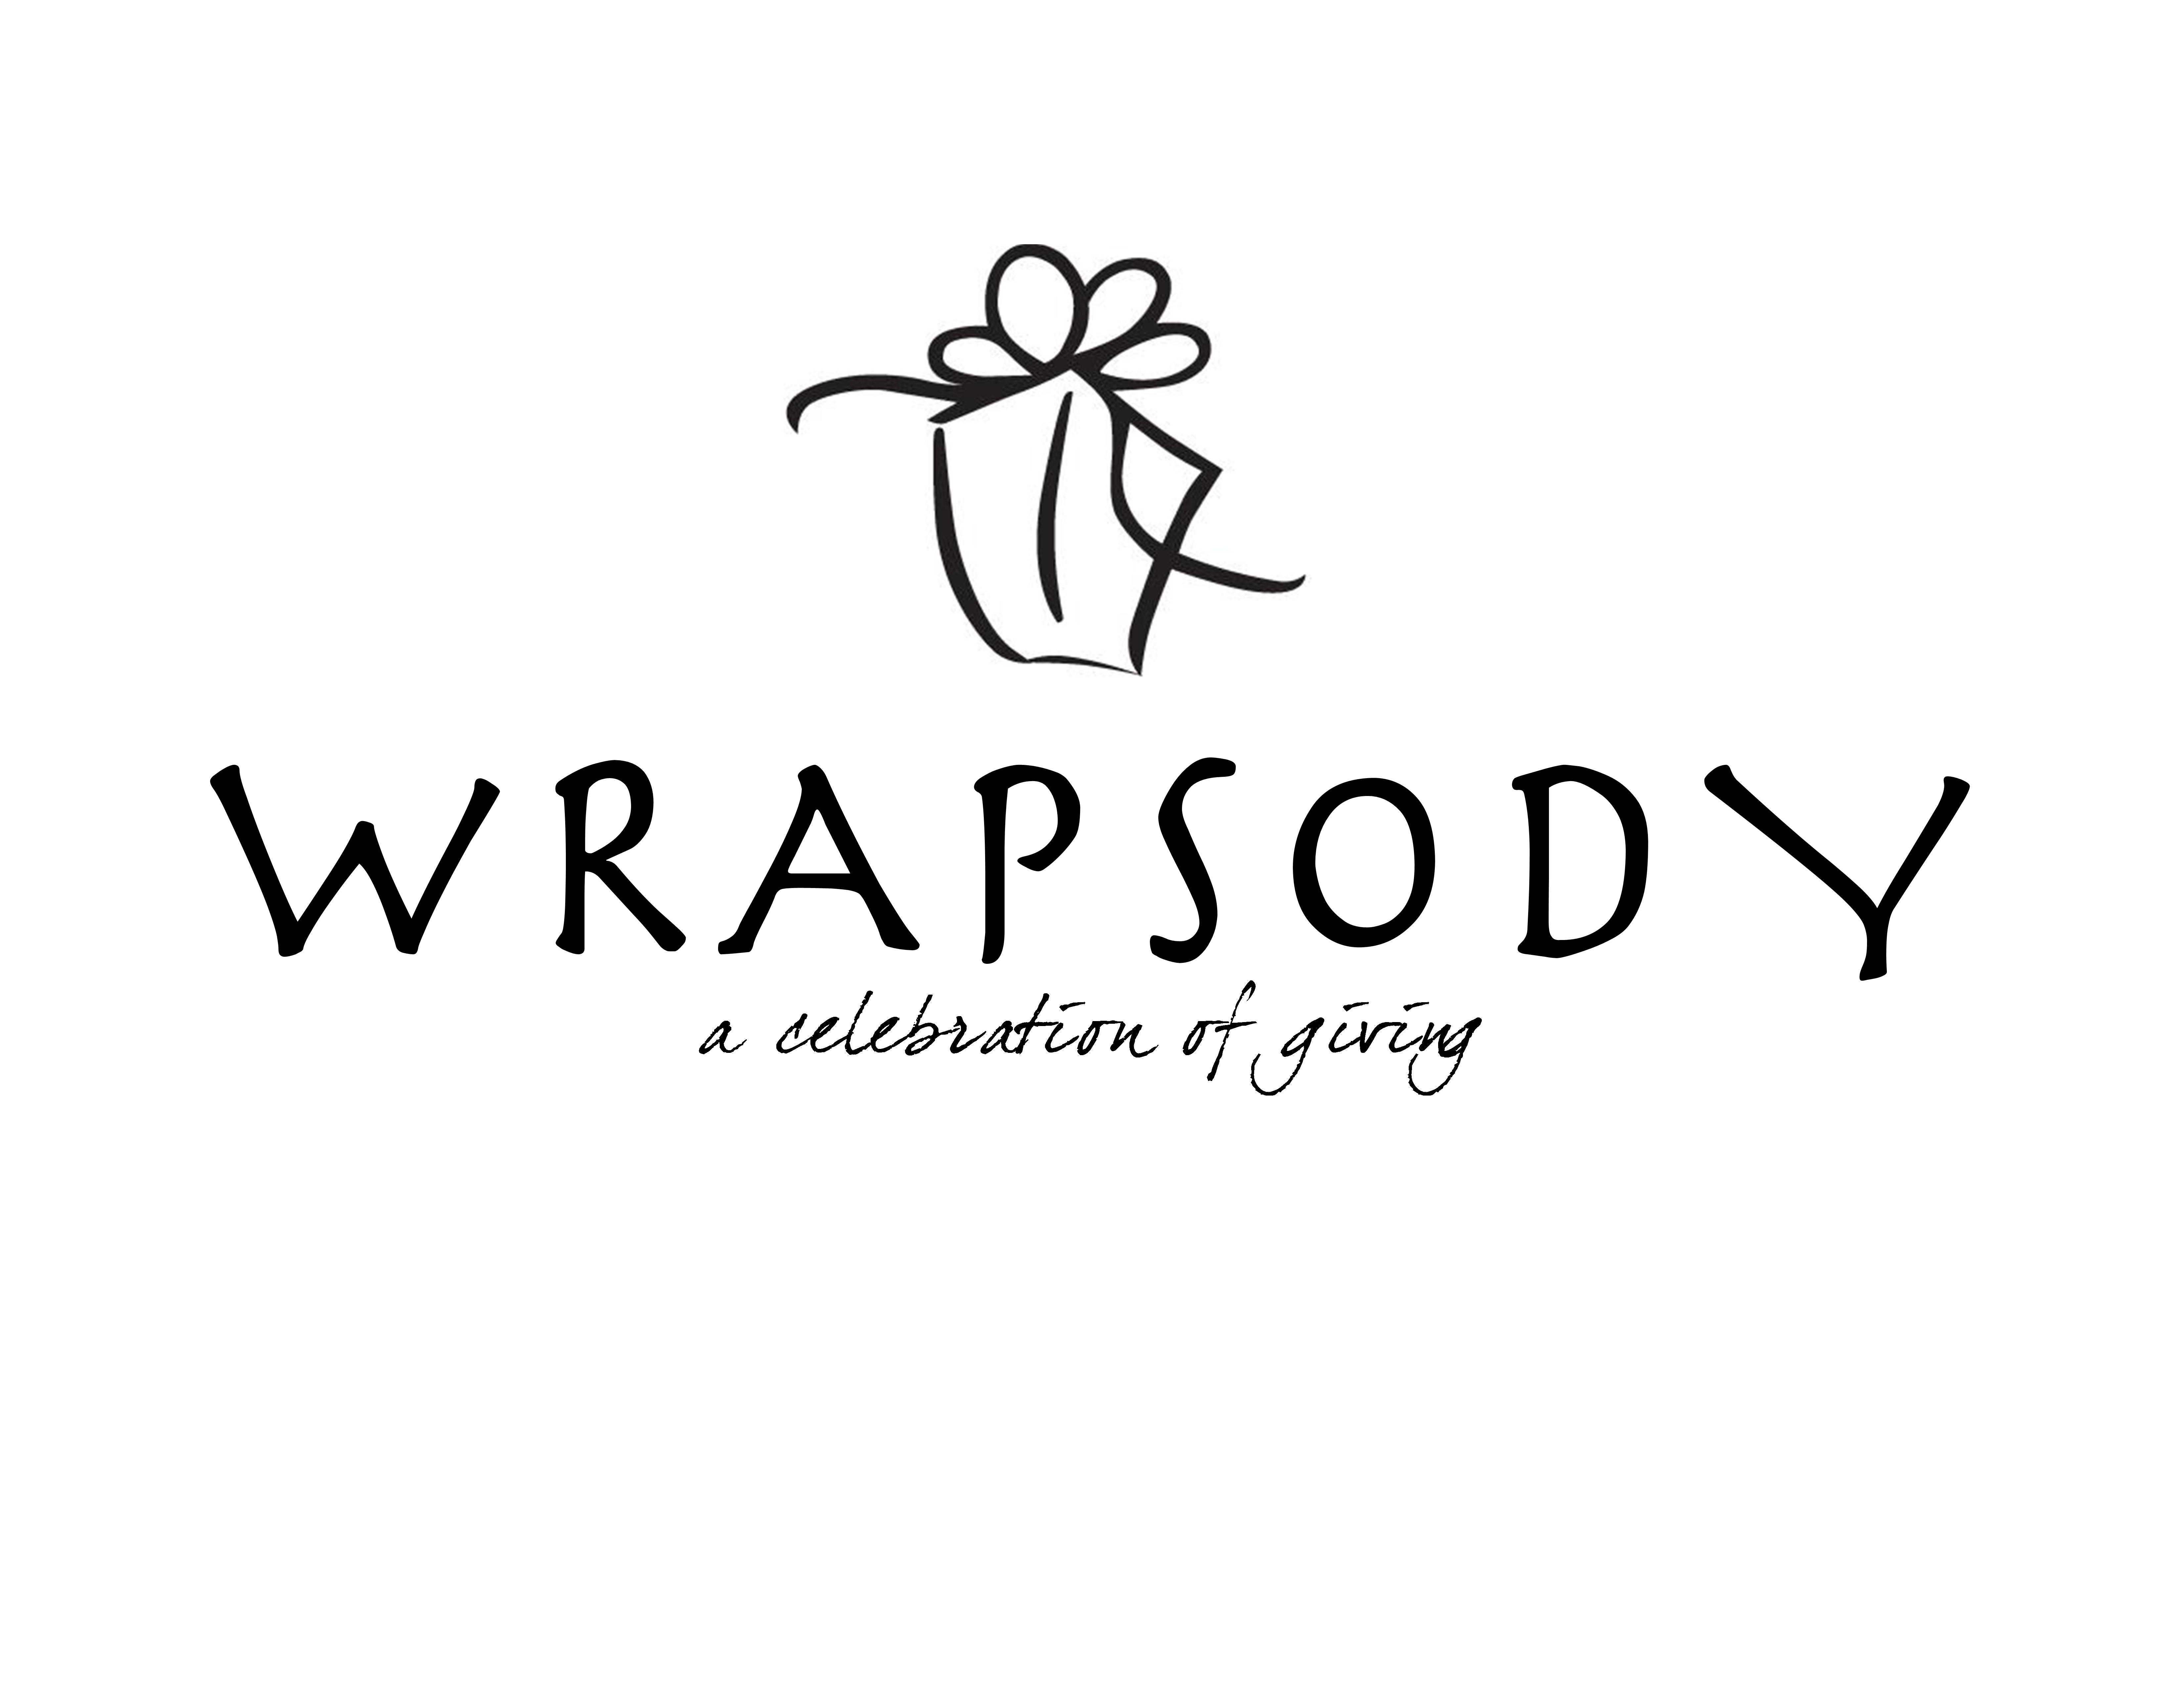 the wrap up a celebration of giving